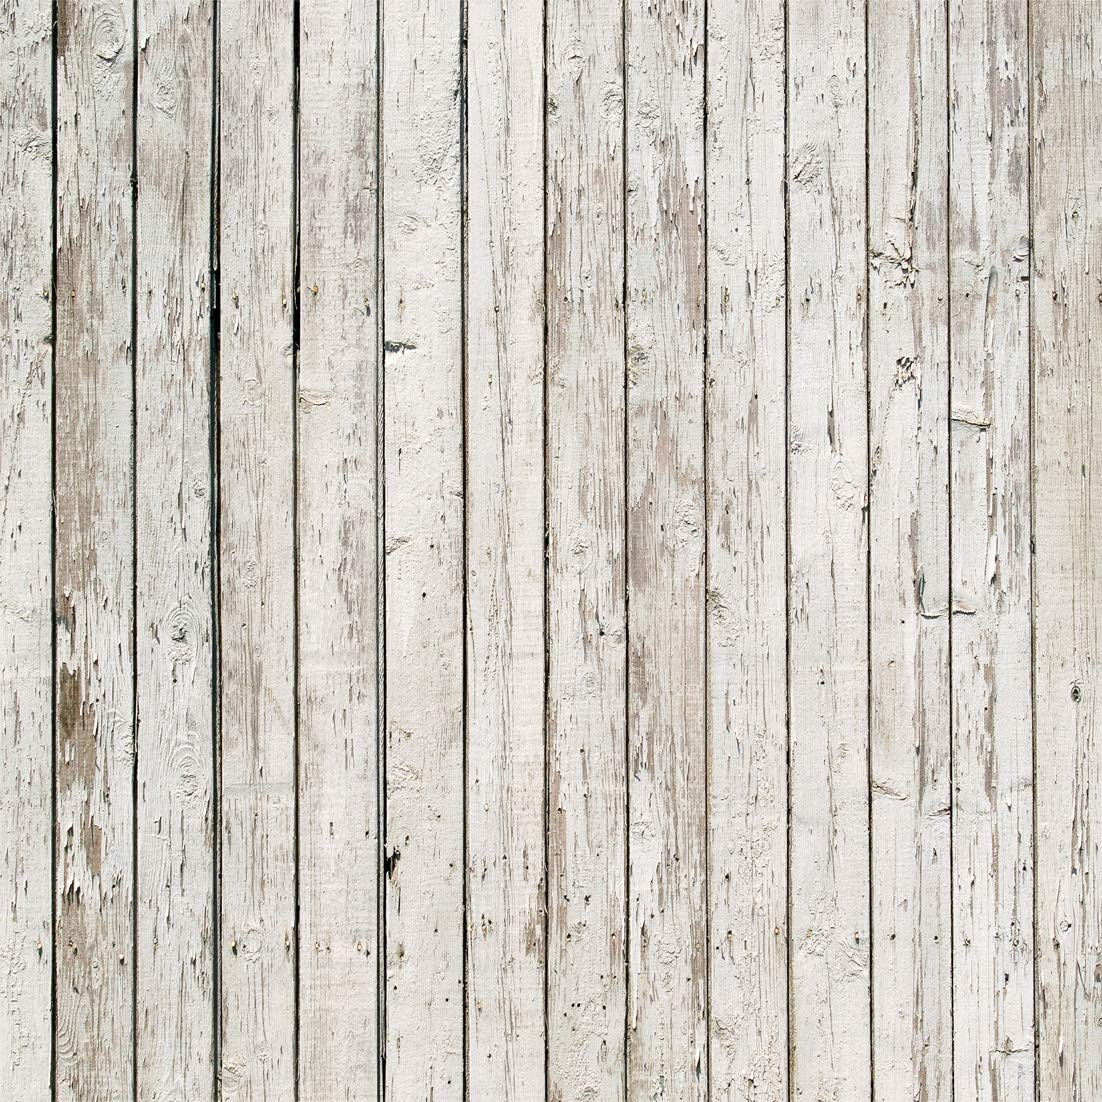 LYWYGG 10x10ft Photography Backdrop White Wood Backdrops for Photography Wood Floor Wall Background for Photographyers CP-22-1010